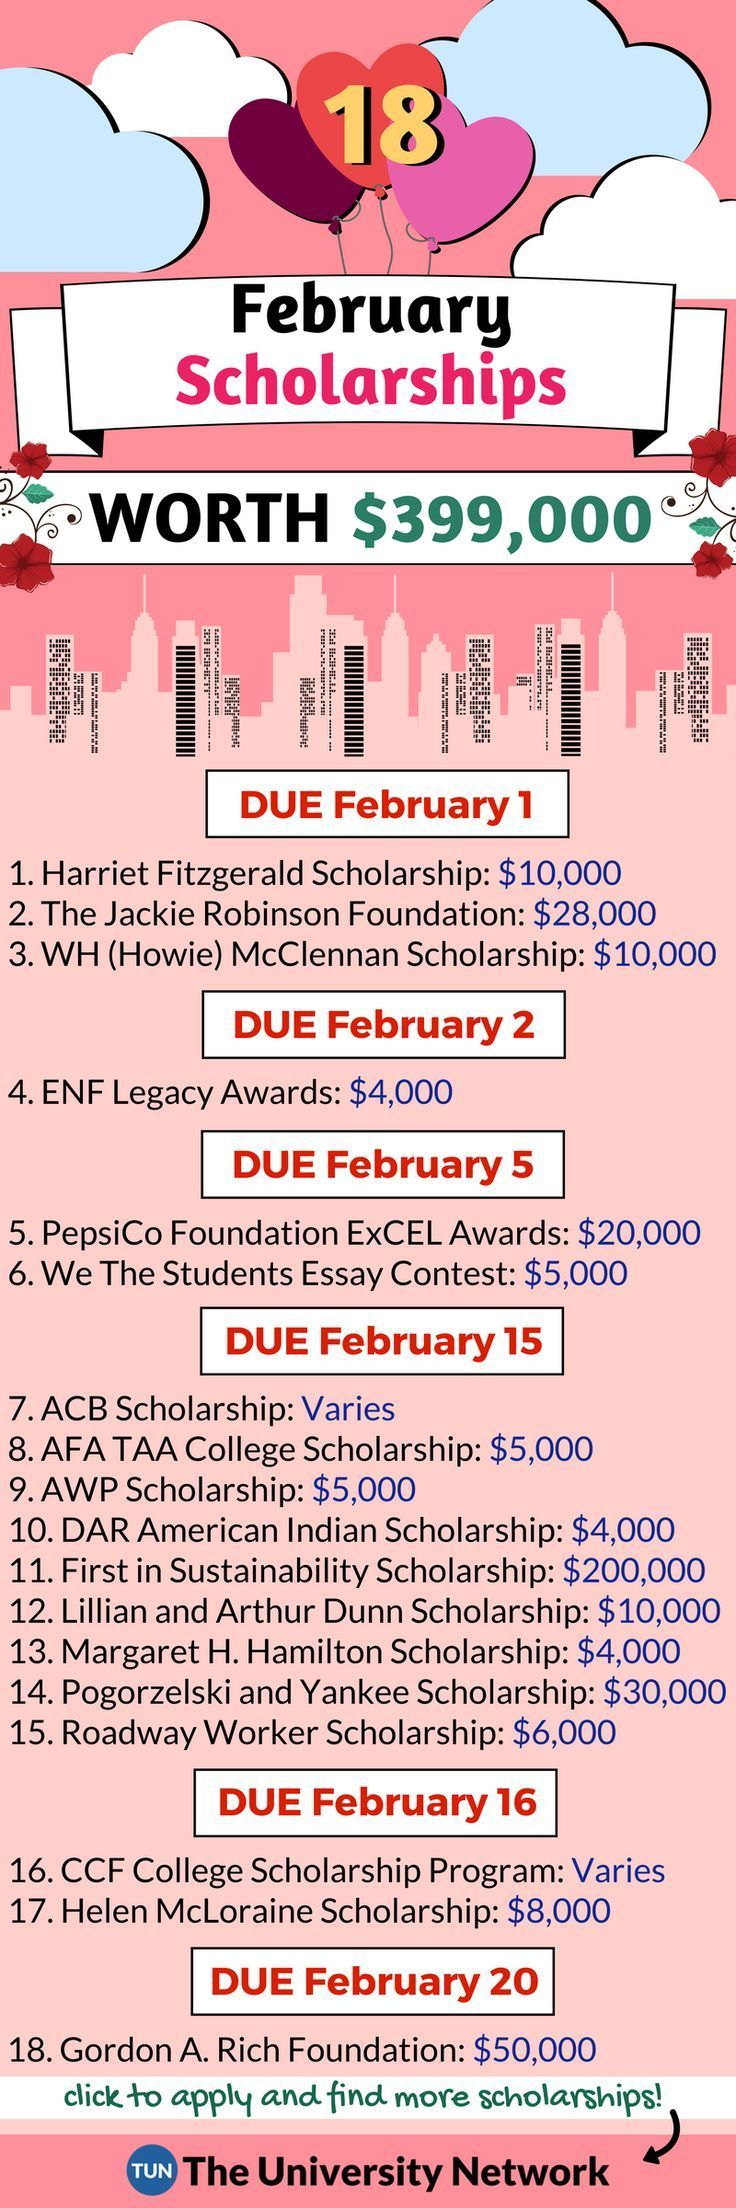 Here is a selected list of February 2018 Scholarships.